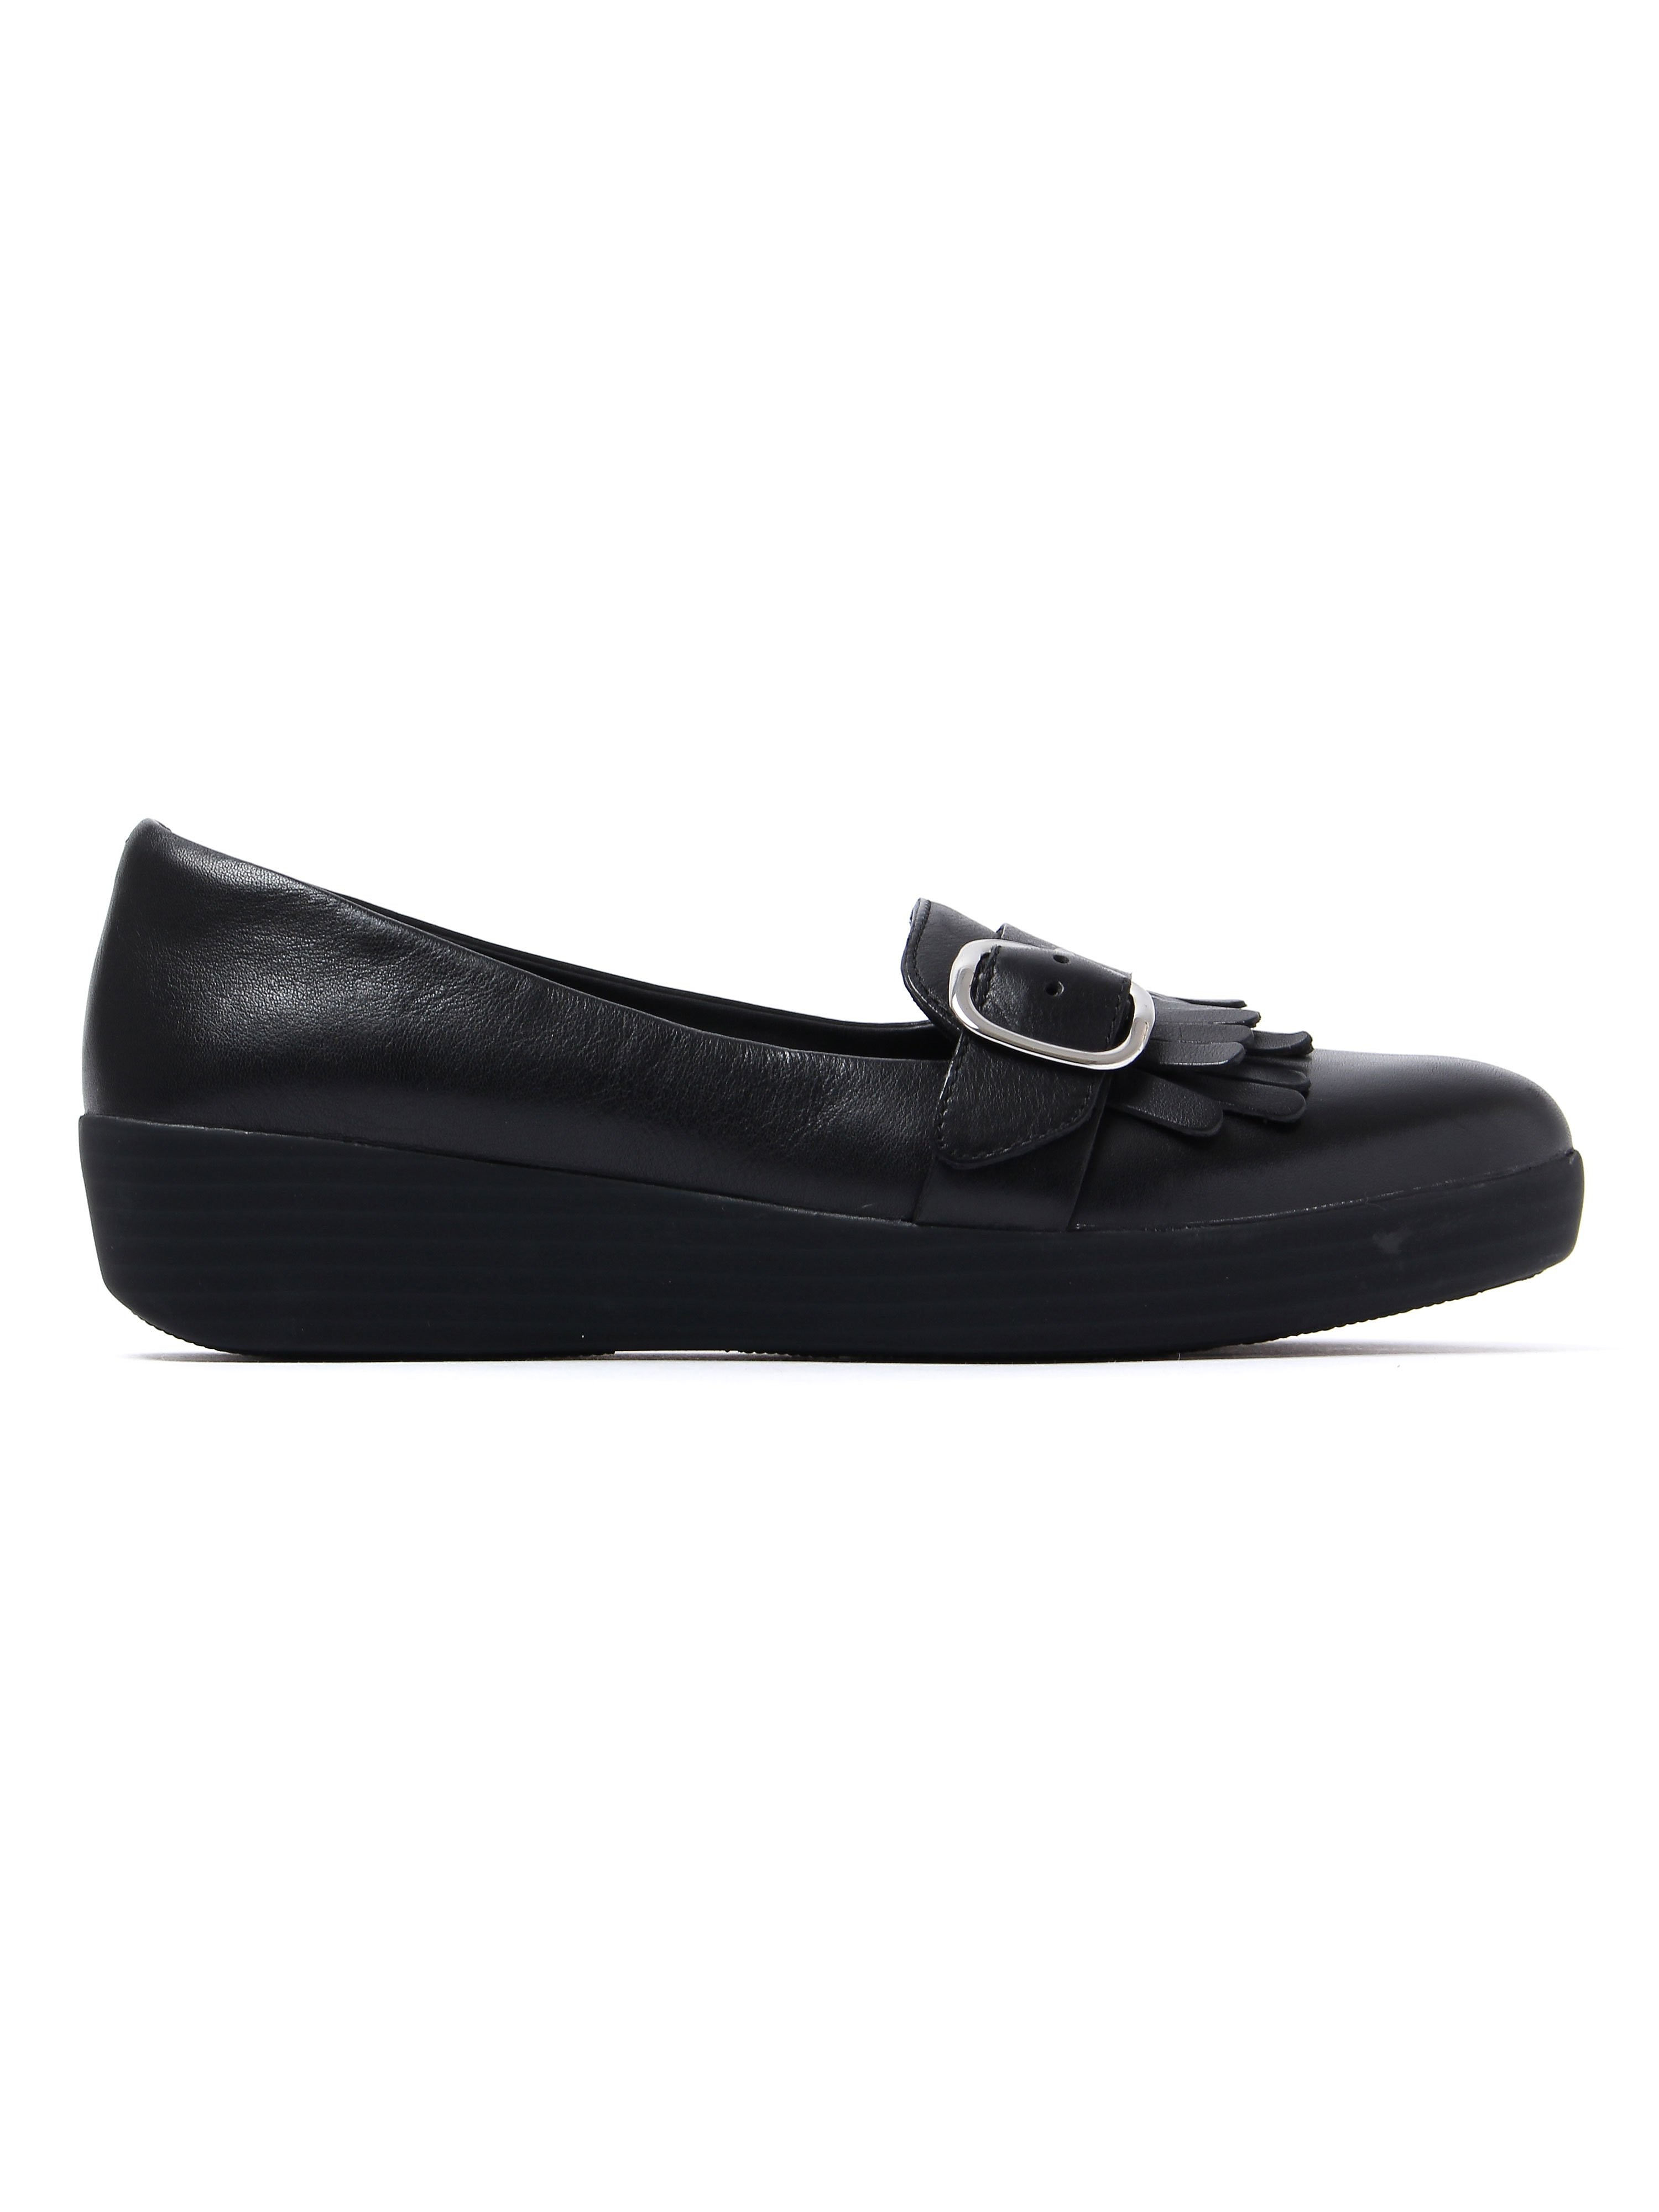 FitFlop Women's Buckle Sneakerloafers - Black Leather